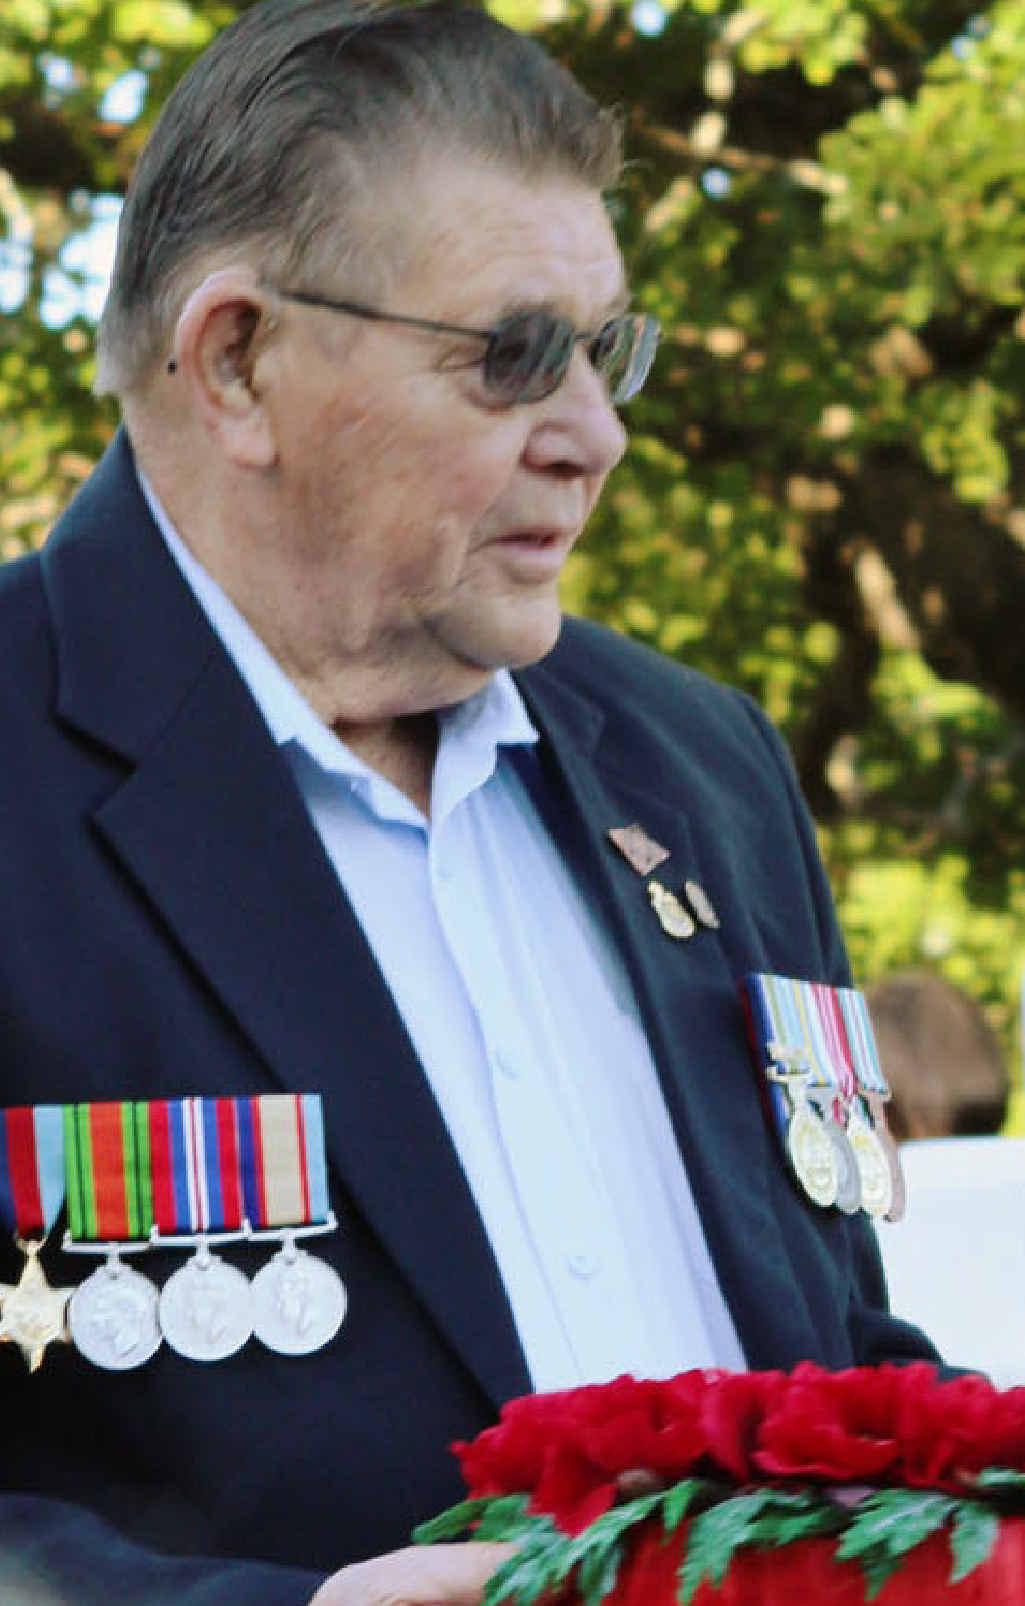 Ipswich army veteran Brian Herbert Young has passed away.